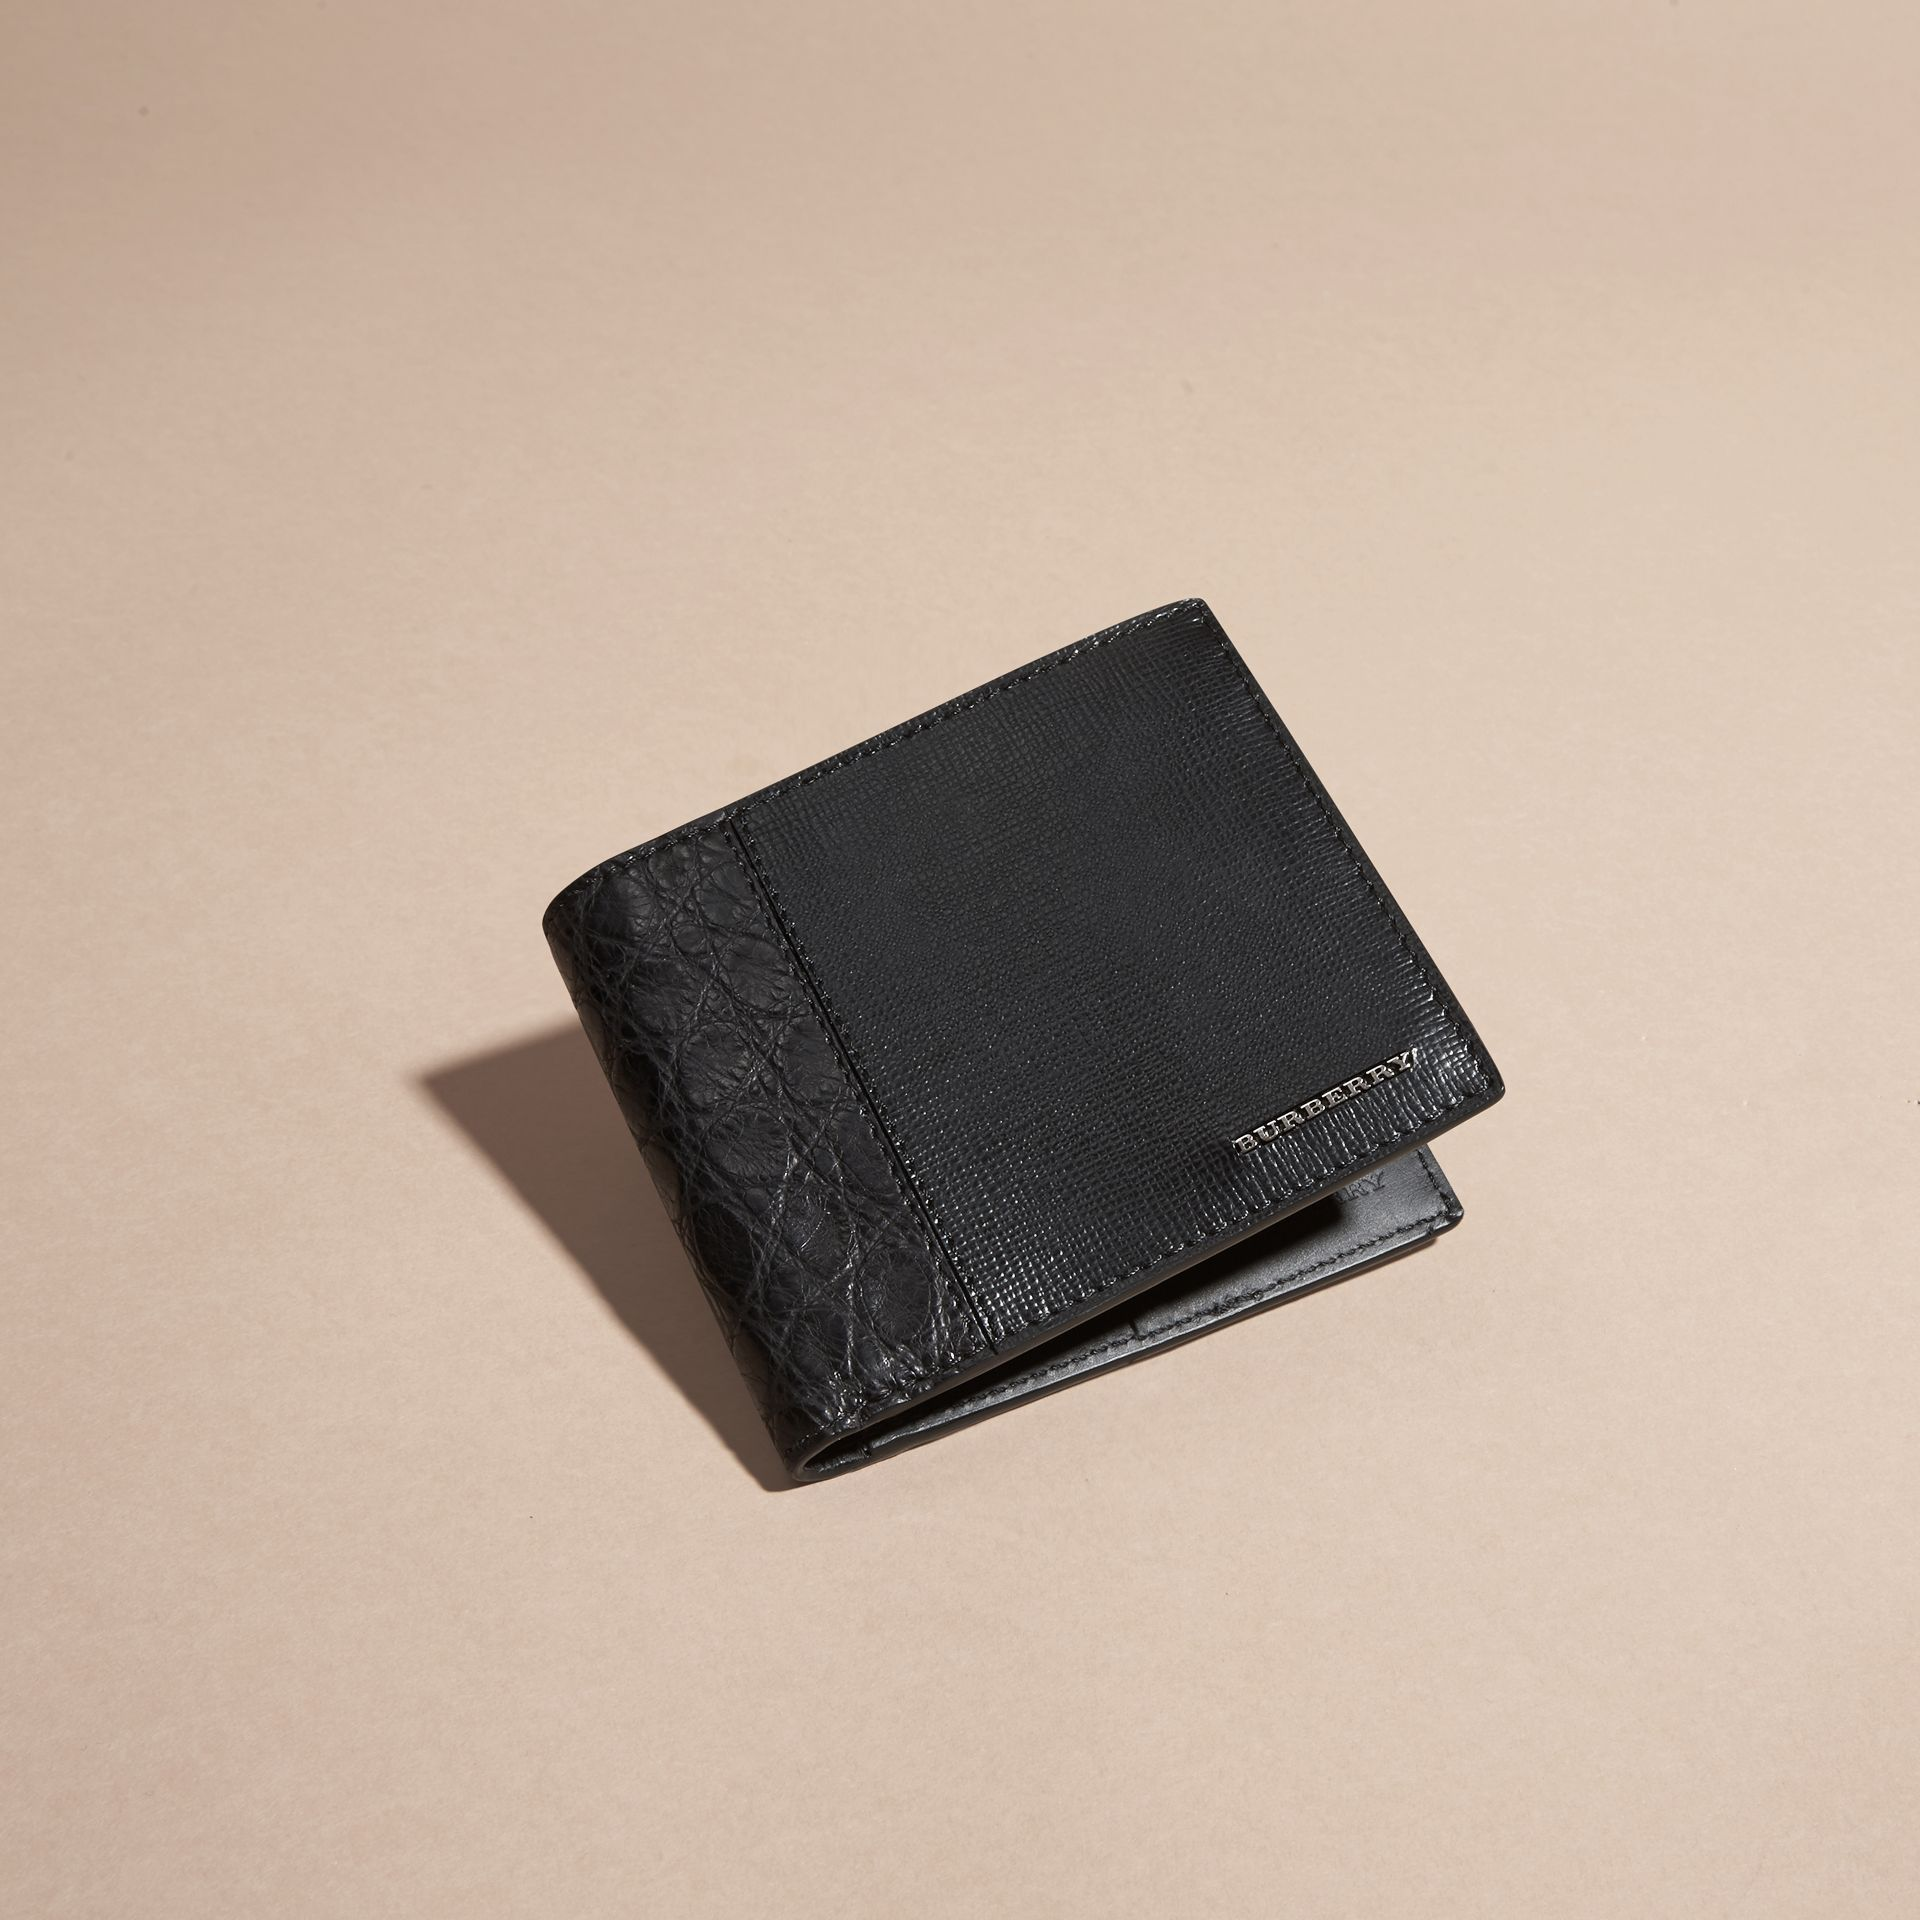 Leather and Alligator International Bifold Wallet in Black - Men | Burberry - gallery image 2